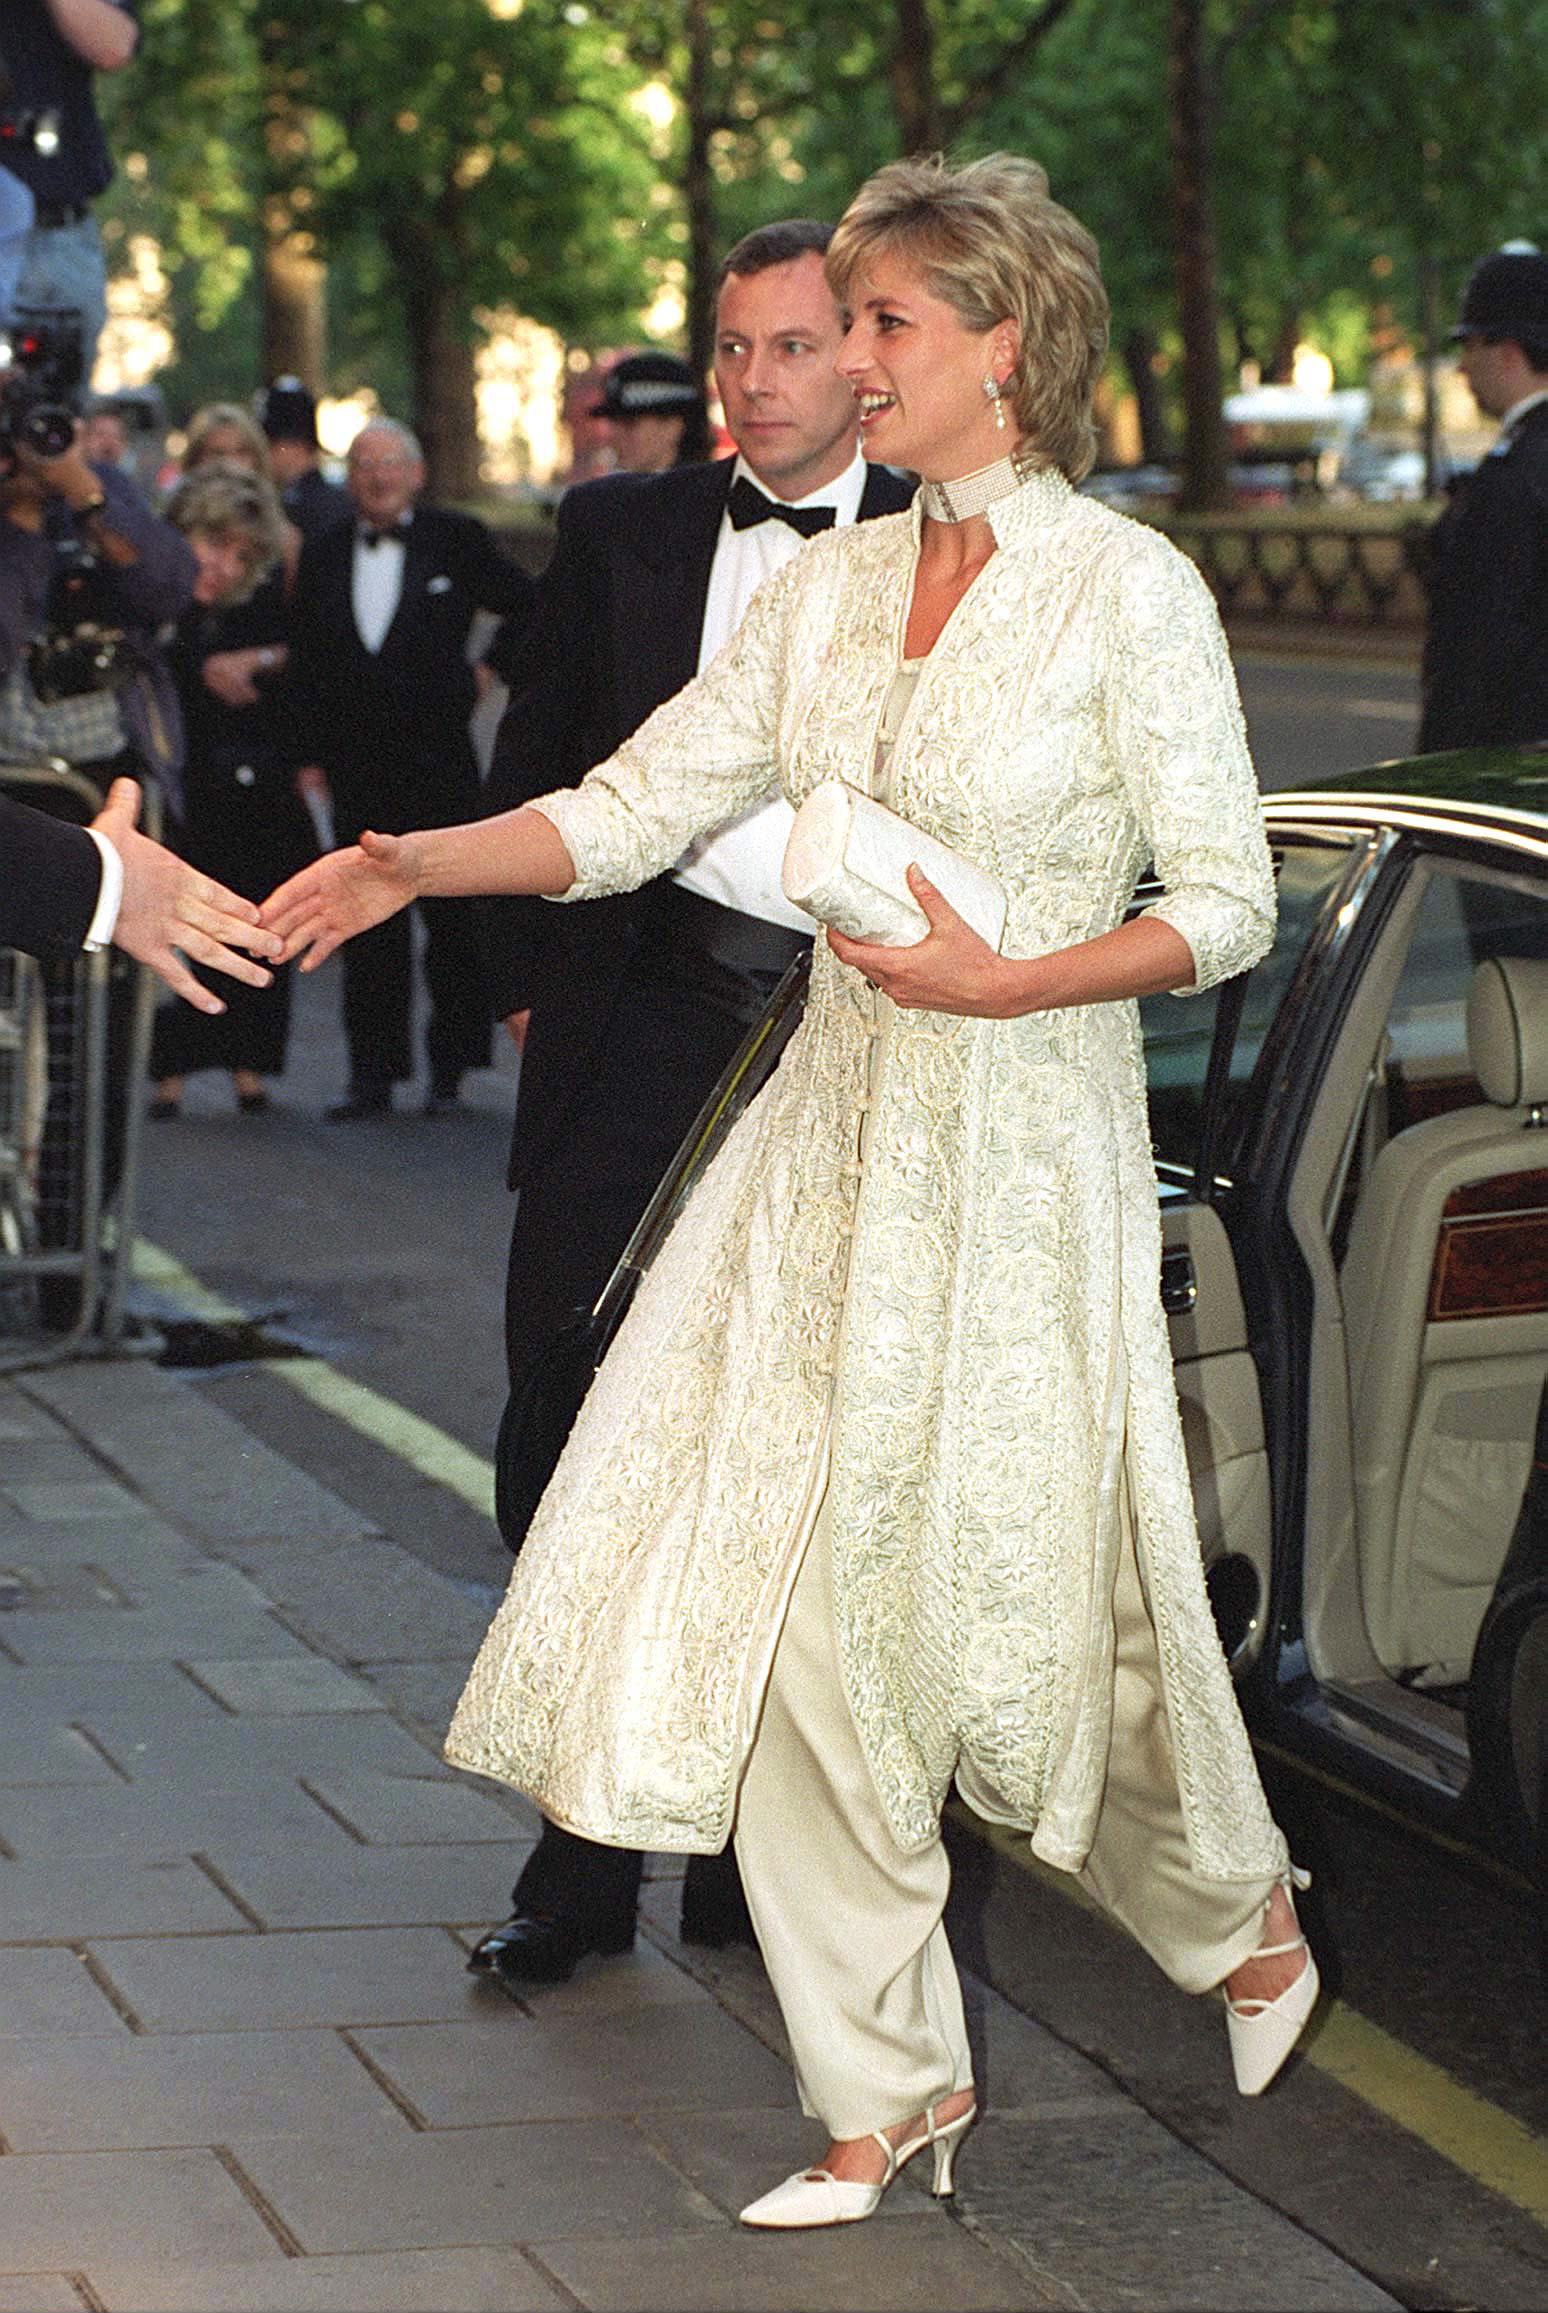 Diana wore a shalwar kameez, a gift from friend Jemima Khan, to a 1996 benefit given by Khan's husband, cricketer Imran.